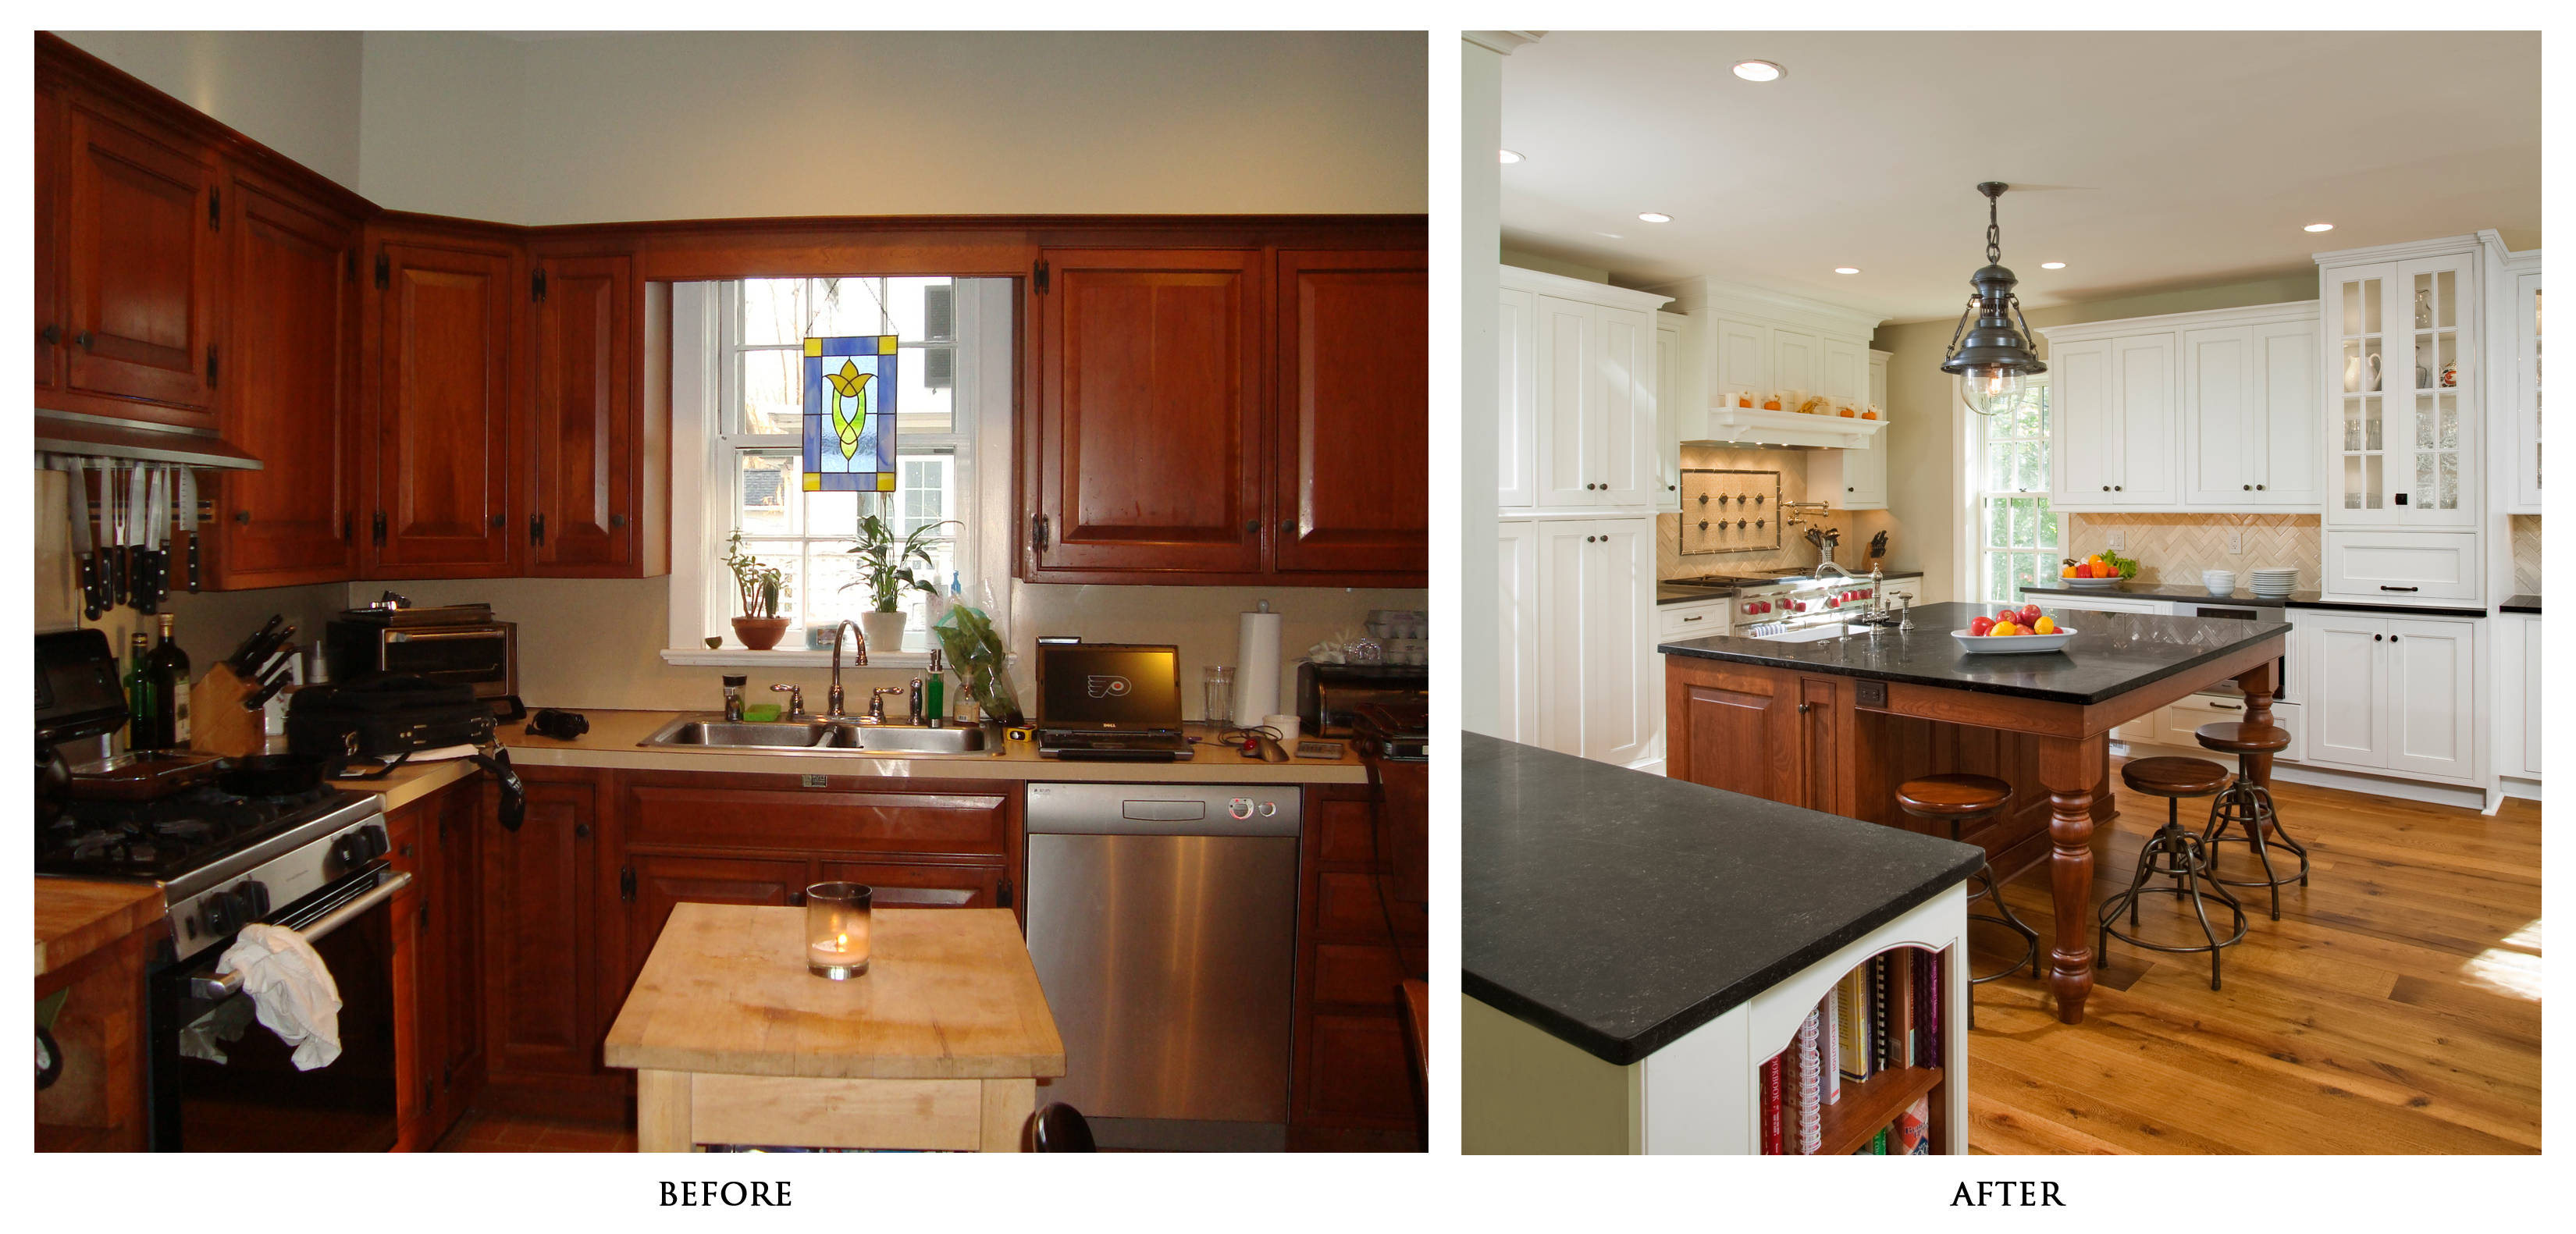 Modern Kitchen Remodel Before And After home design ideas. kitchen makeover pictures kitchen remodeling